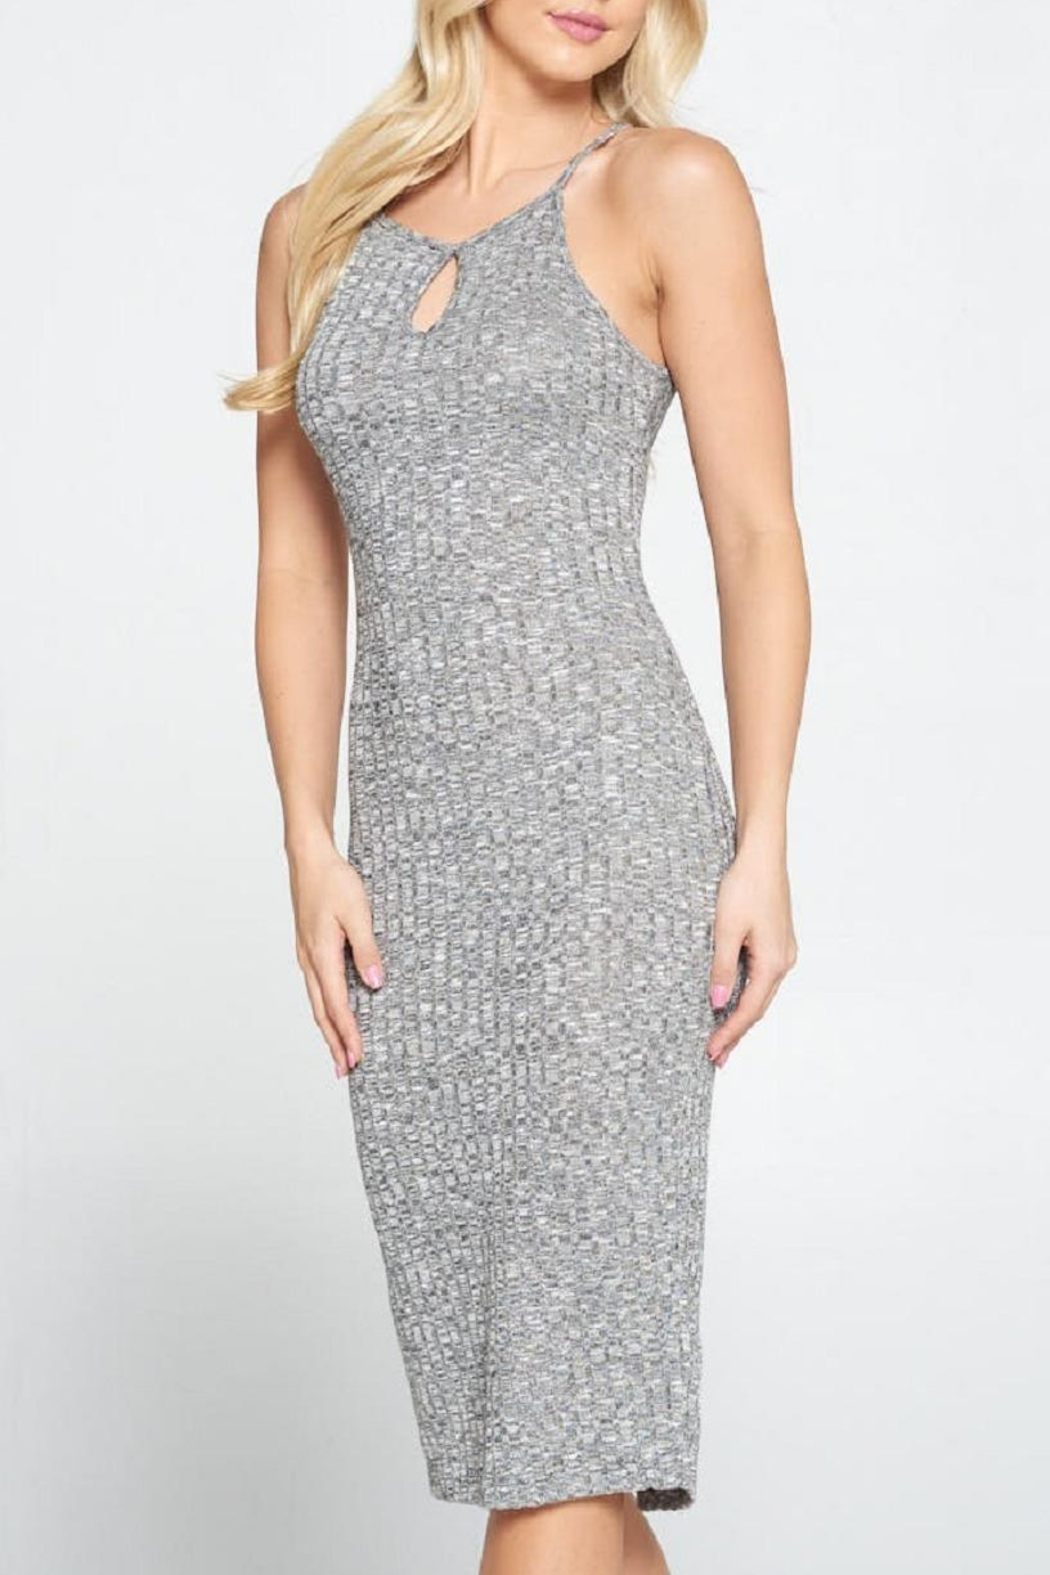 DNA Couture Ribbed Key-Hole Dress - Back Cropped Image